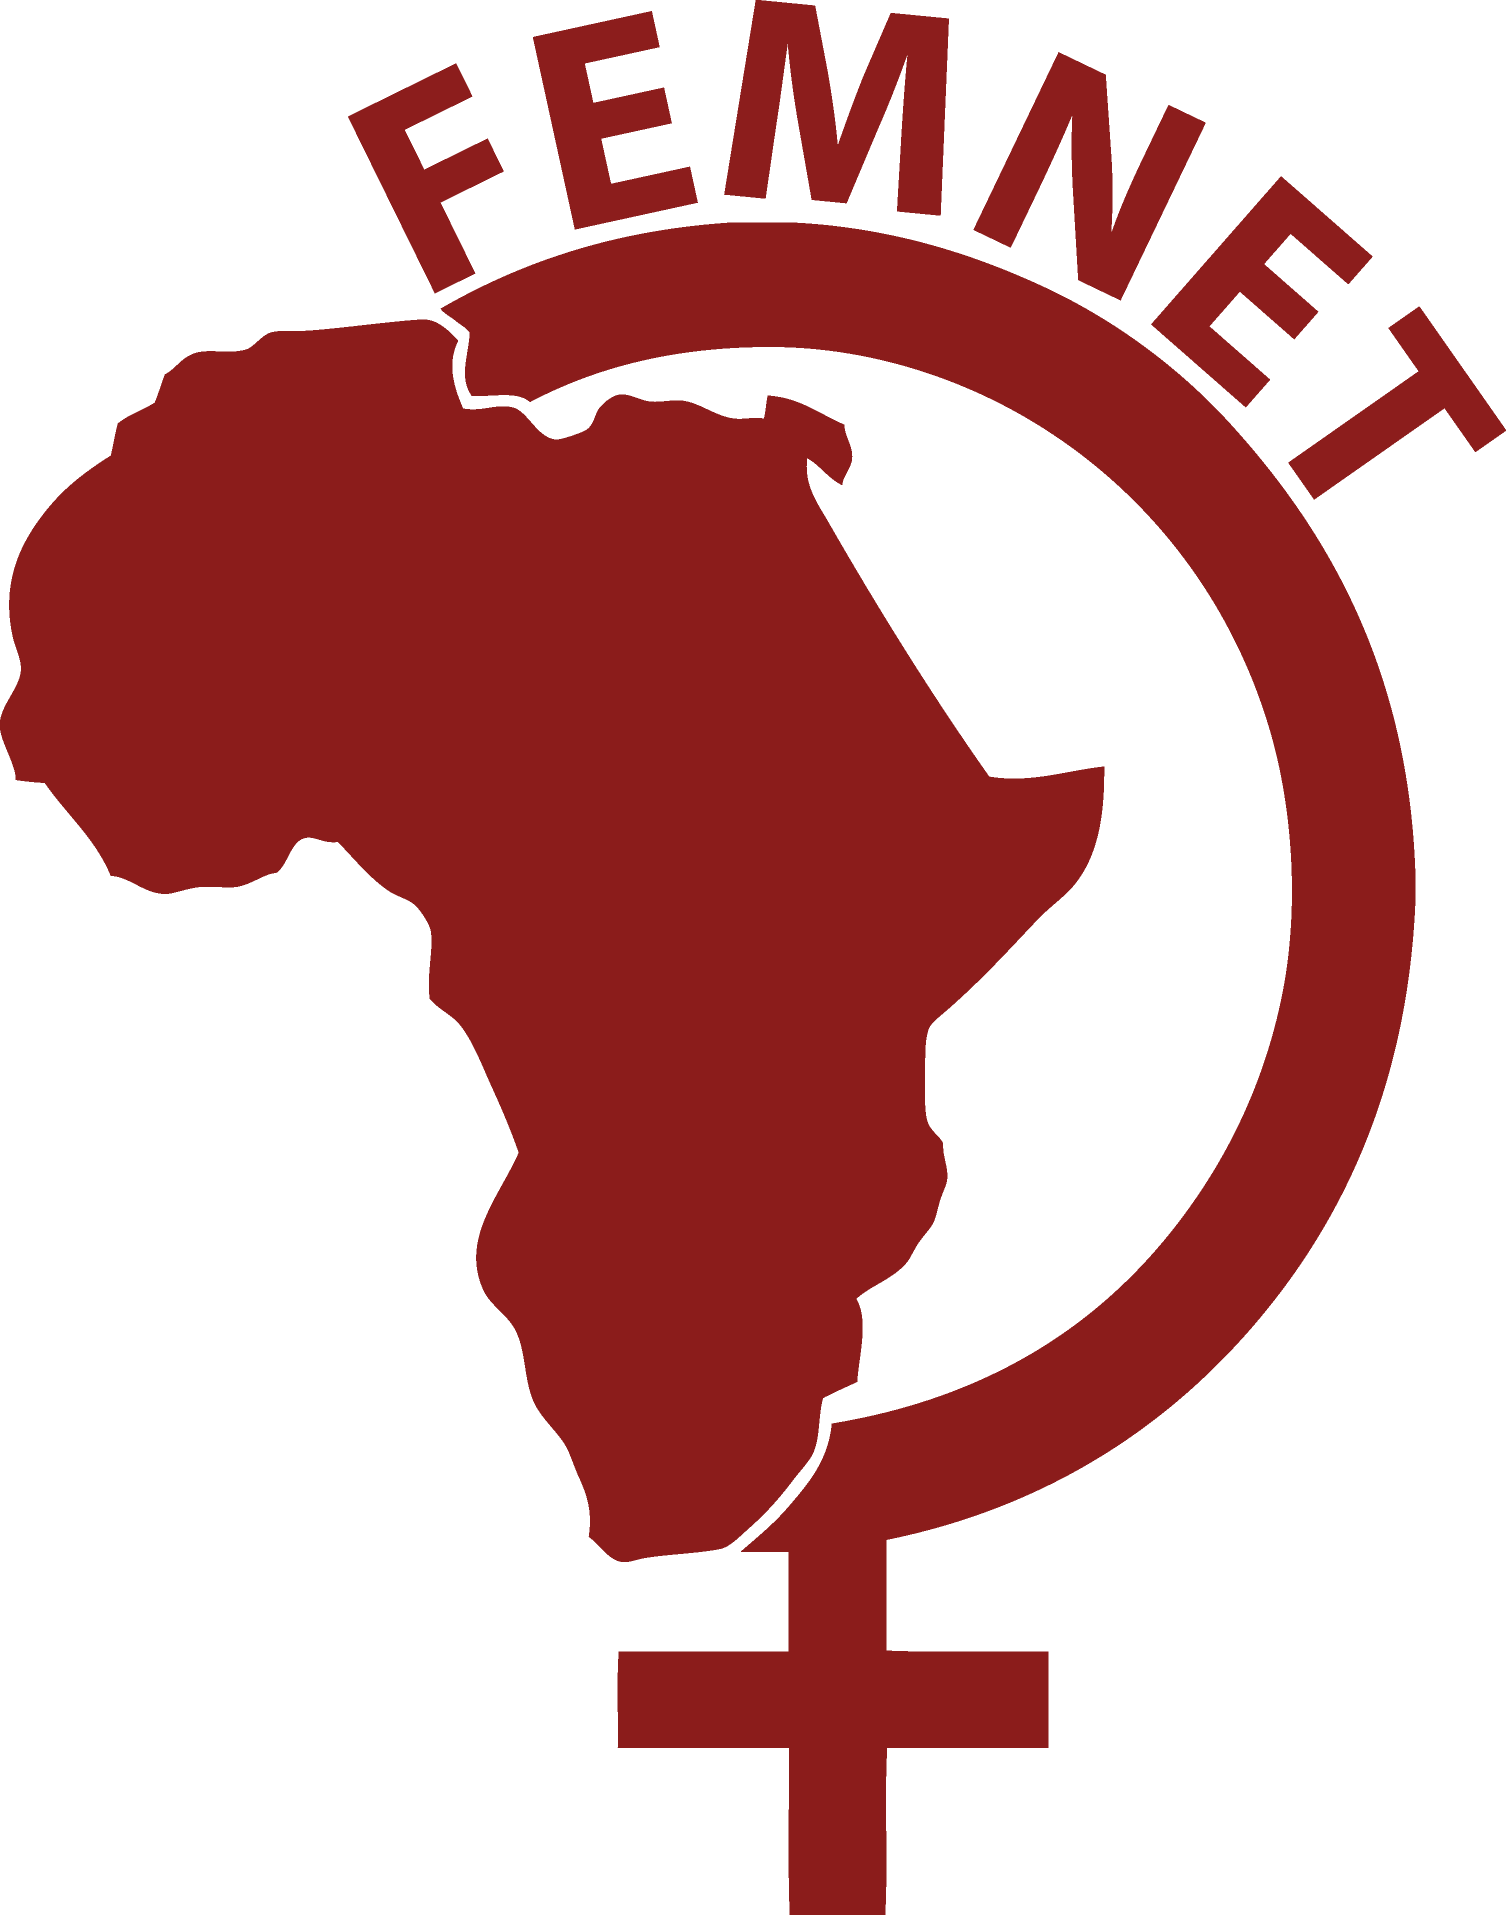 logo for African Women's Development and Communication Network